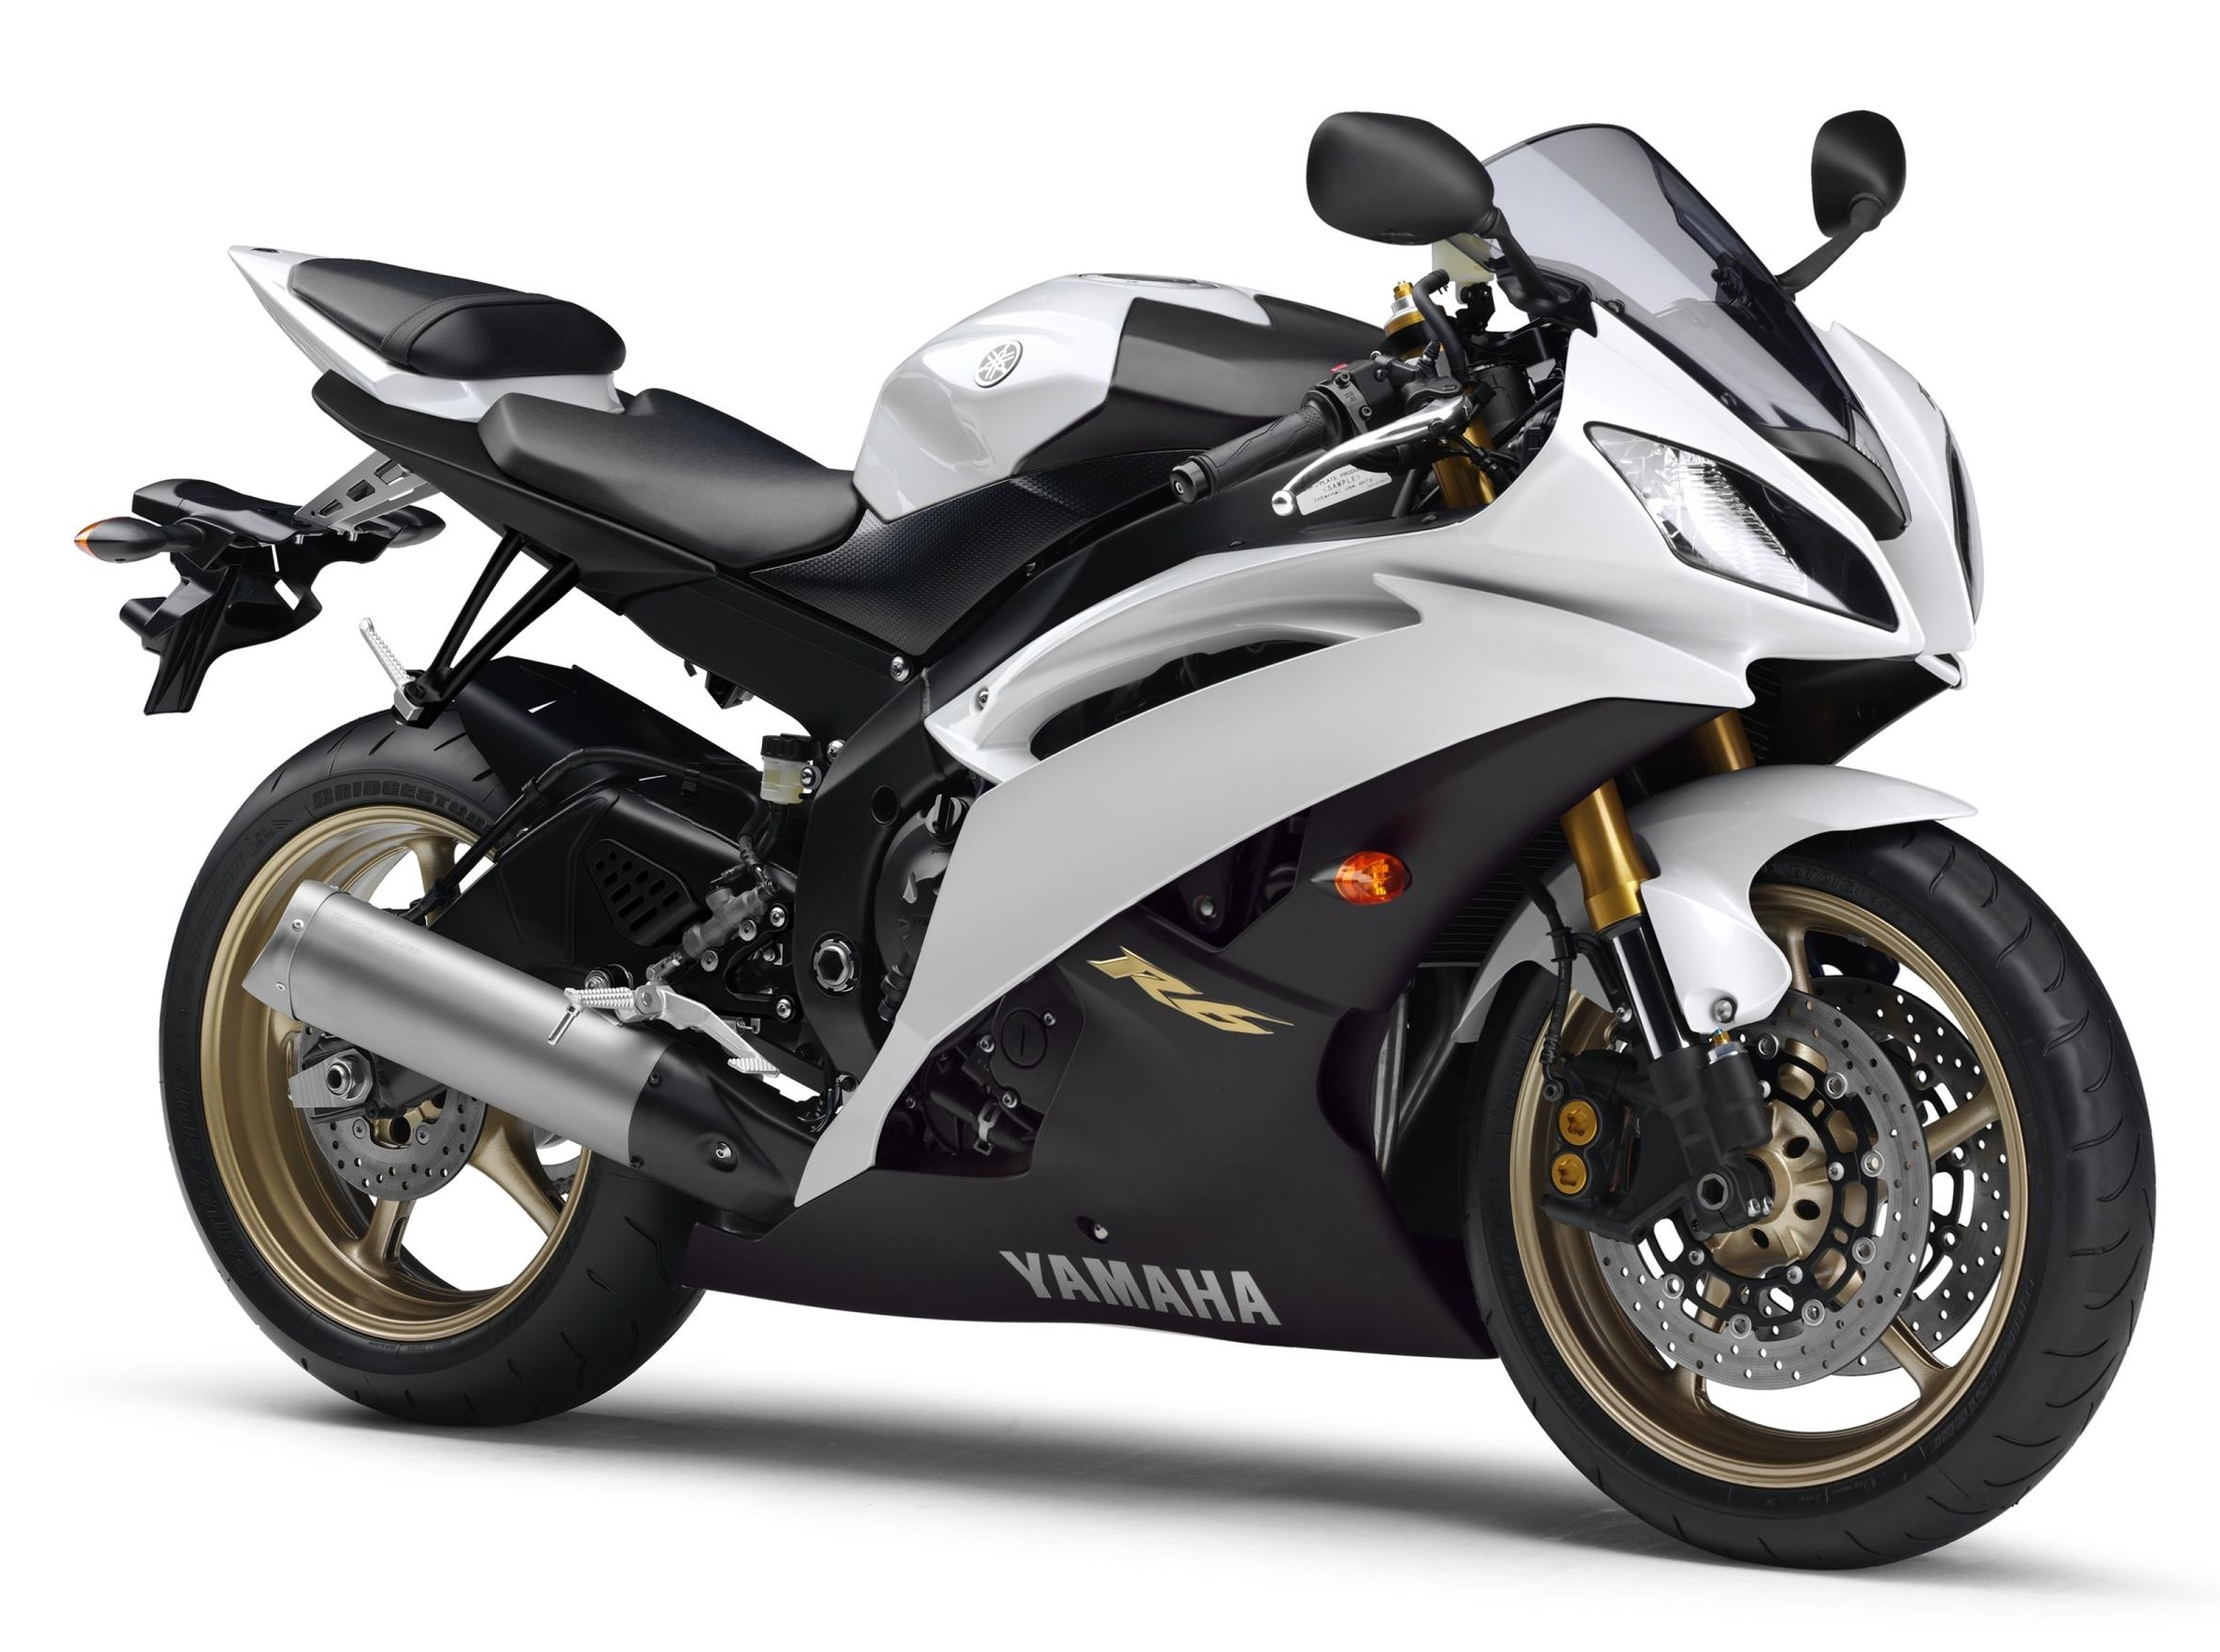 2012 yamaha yzf r6 reviews prices and specs review ebooks - 2012 Yamaha Yzf R6 Reviews Prices And Specs Review Ebooks 11